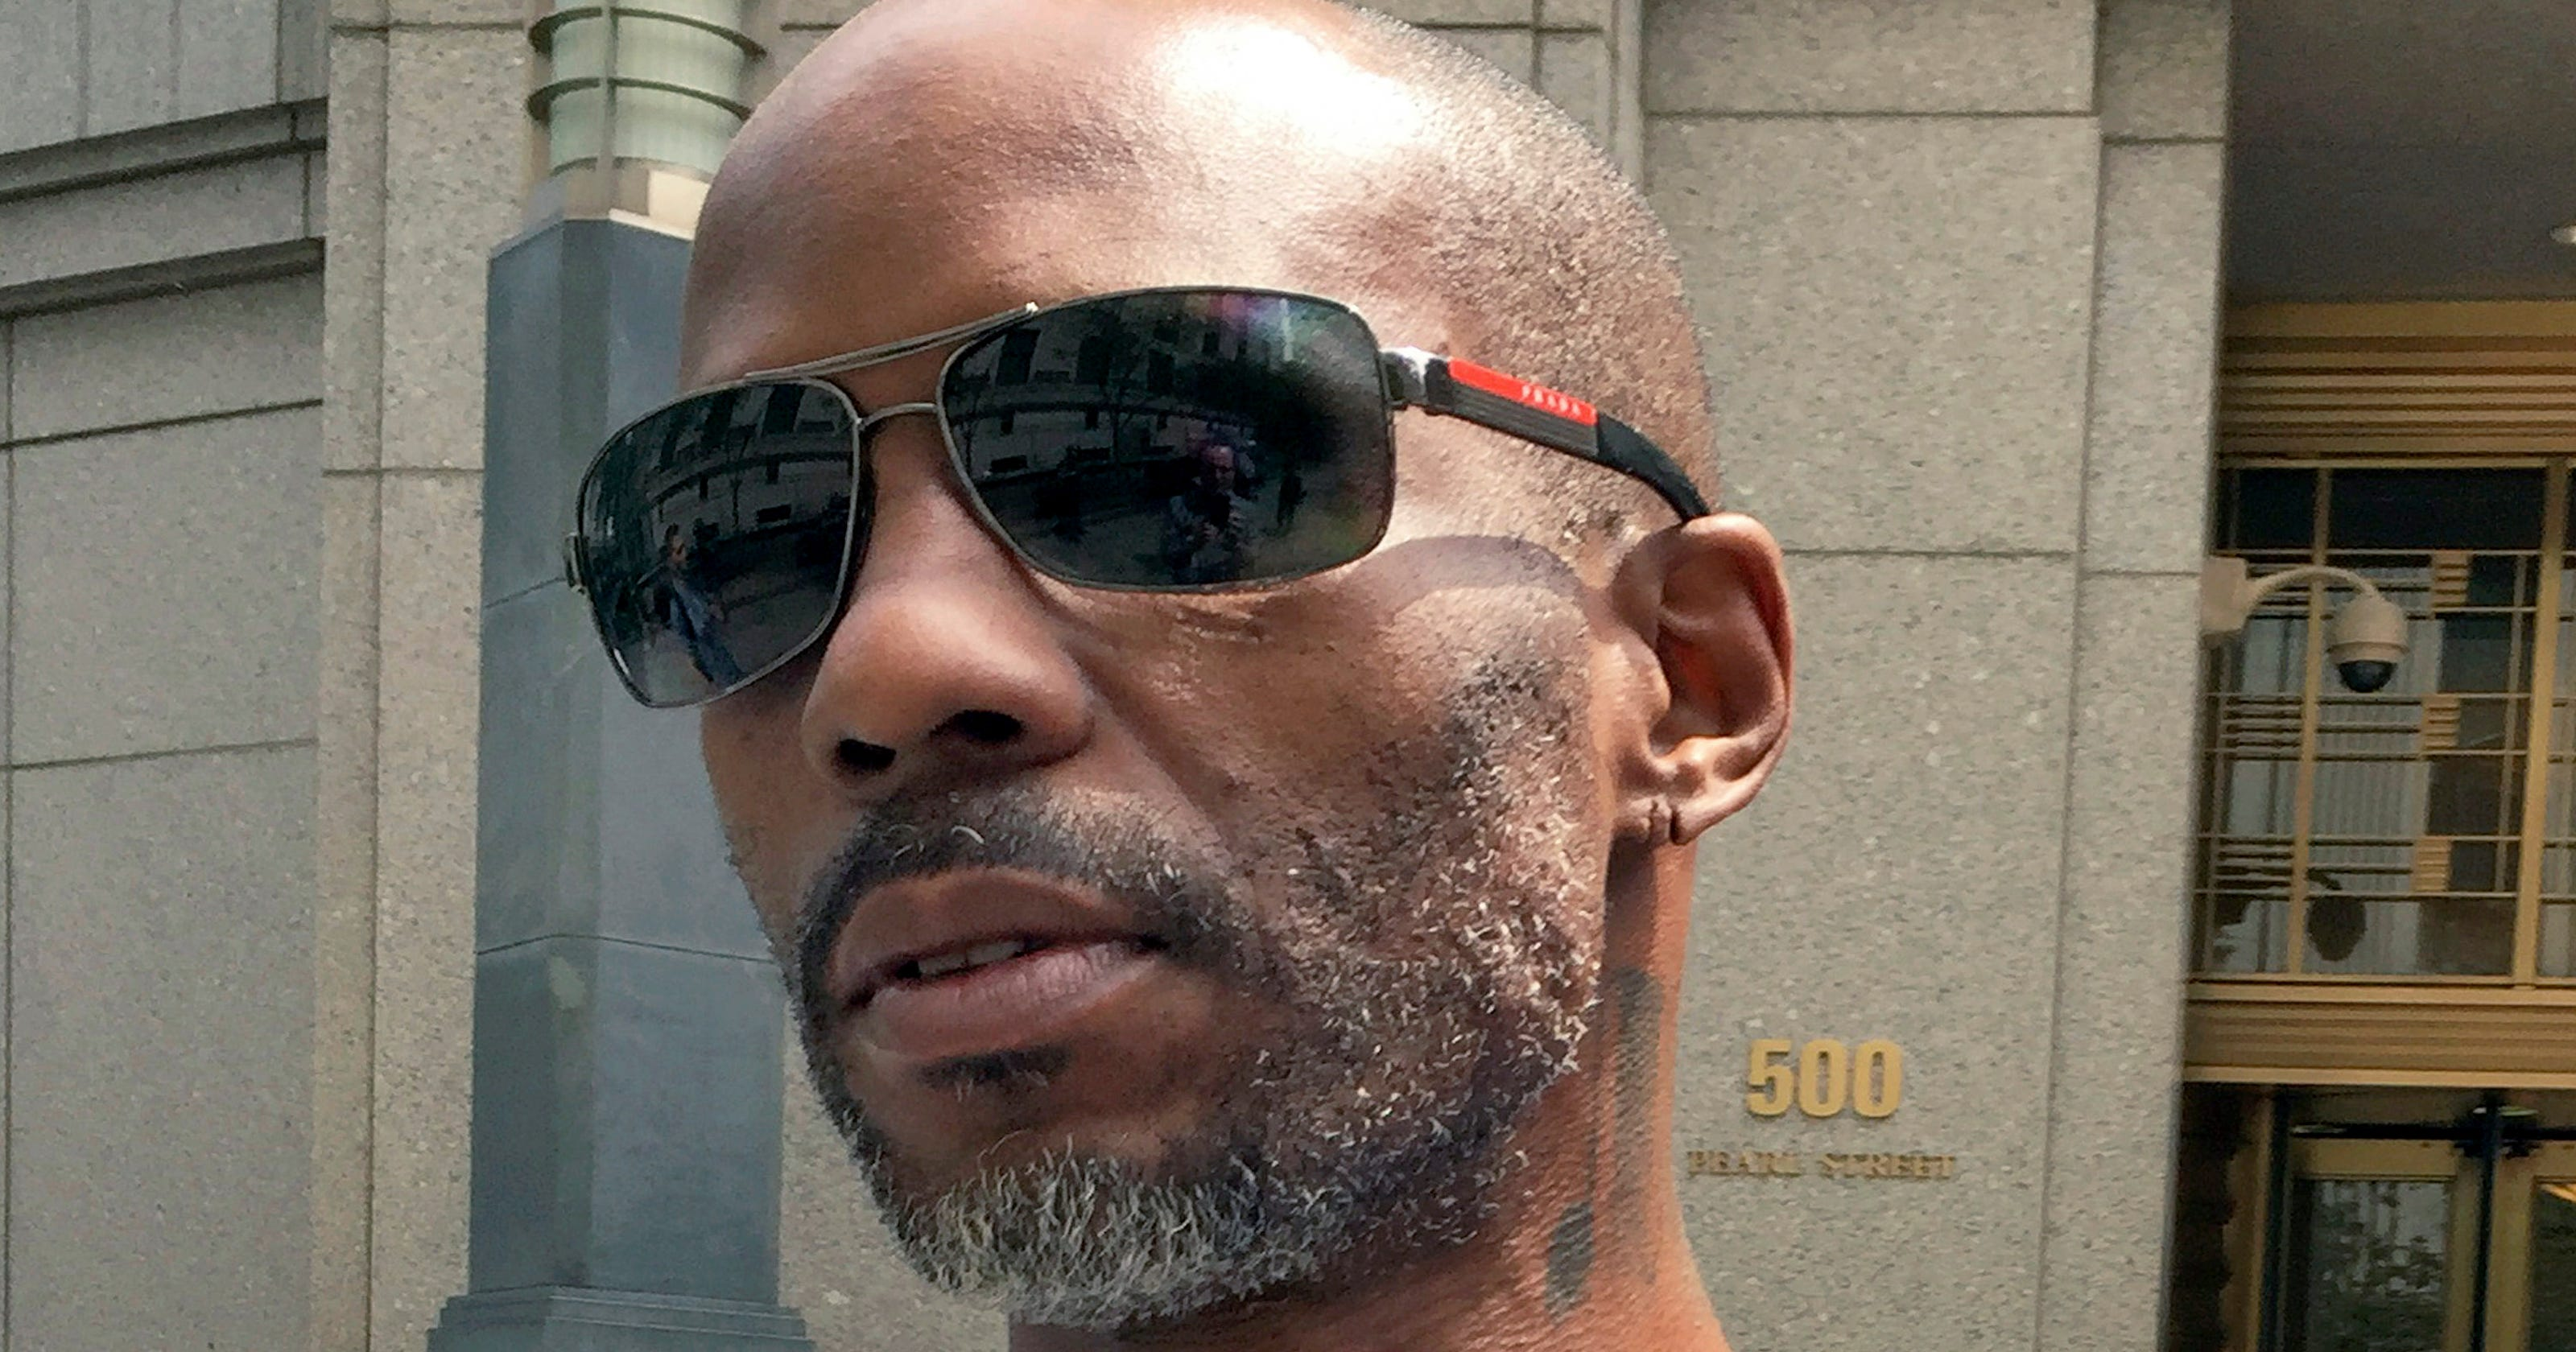 DMX Faces The Music Serenaded By Judge Gets Yearlong Prison Sentence